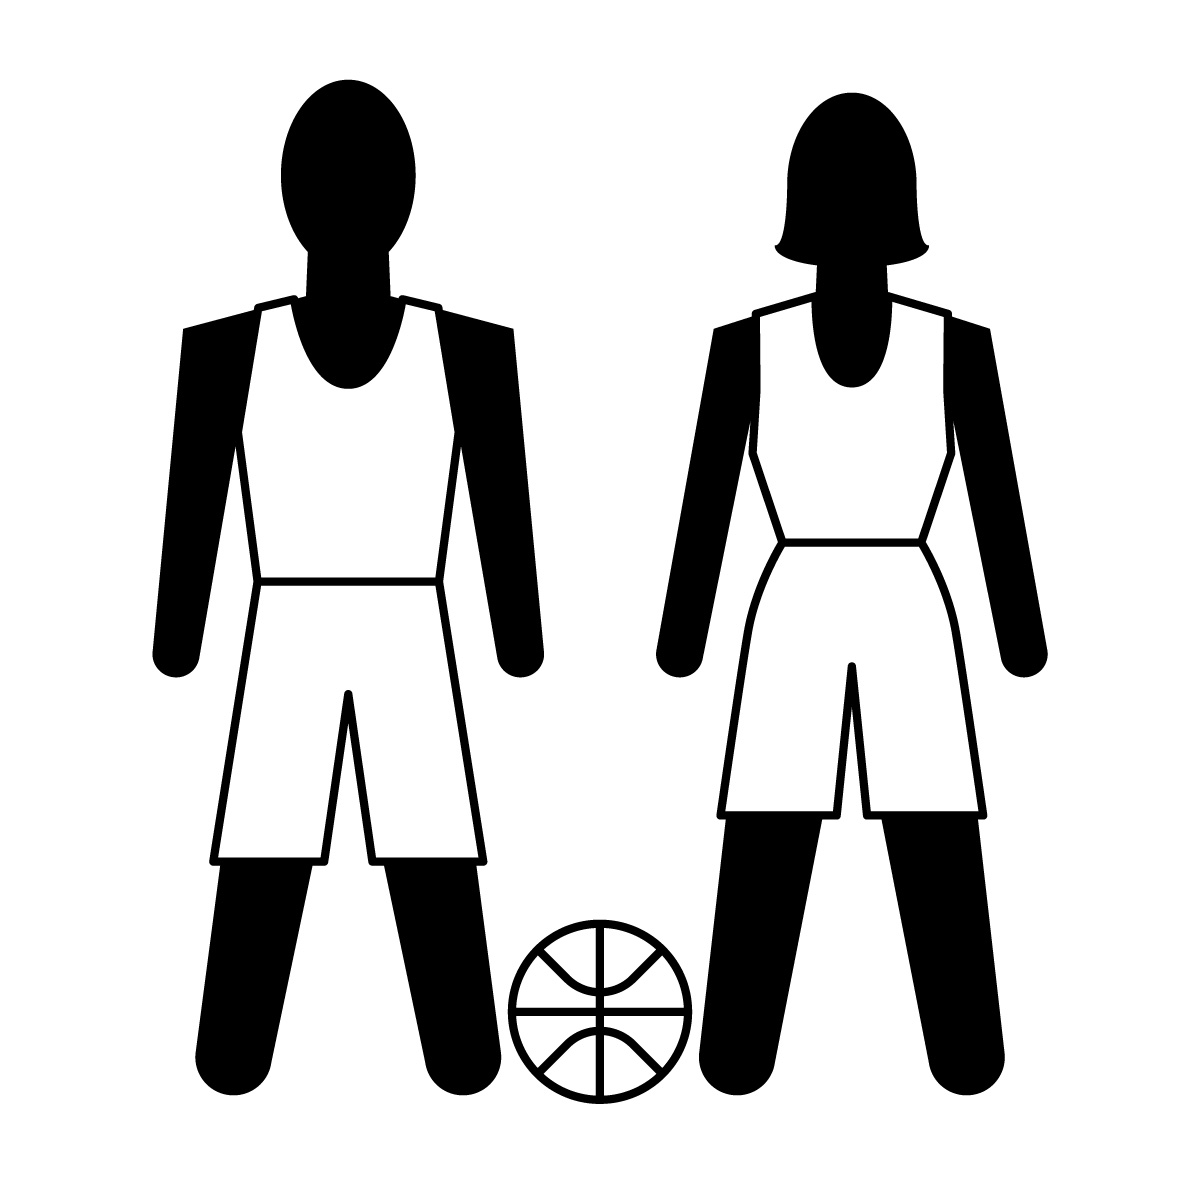 Trends For > Basketball Shorts Clip Art - Cliparts.co